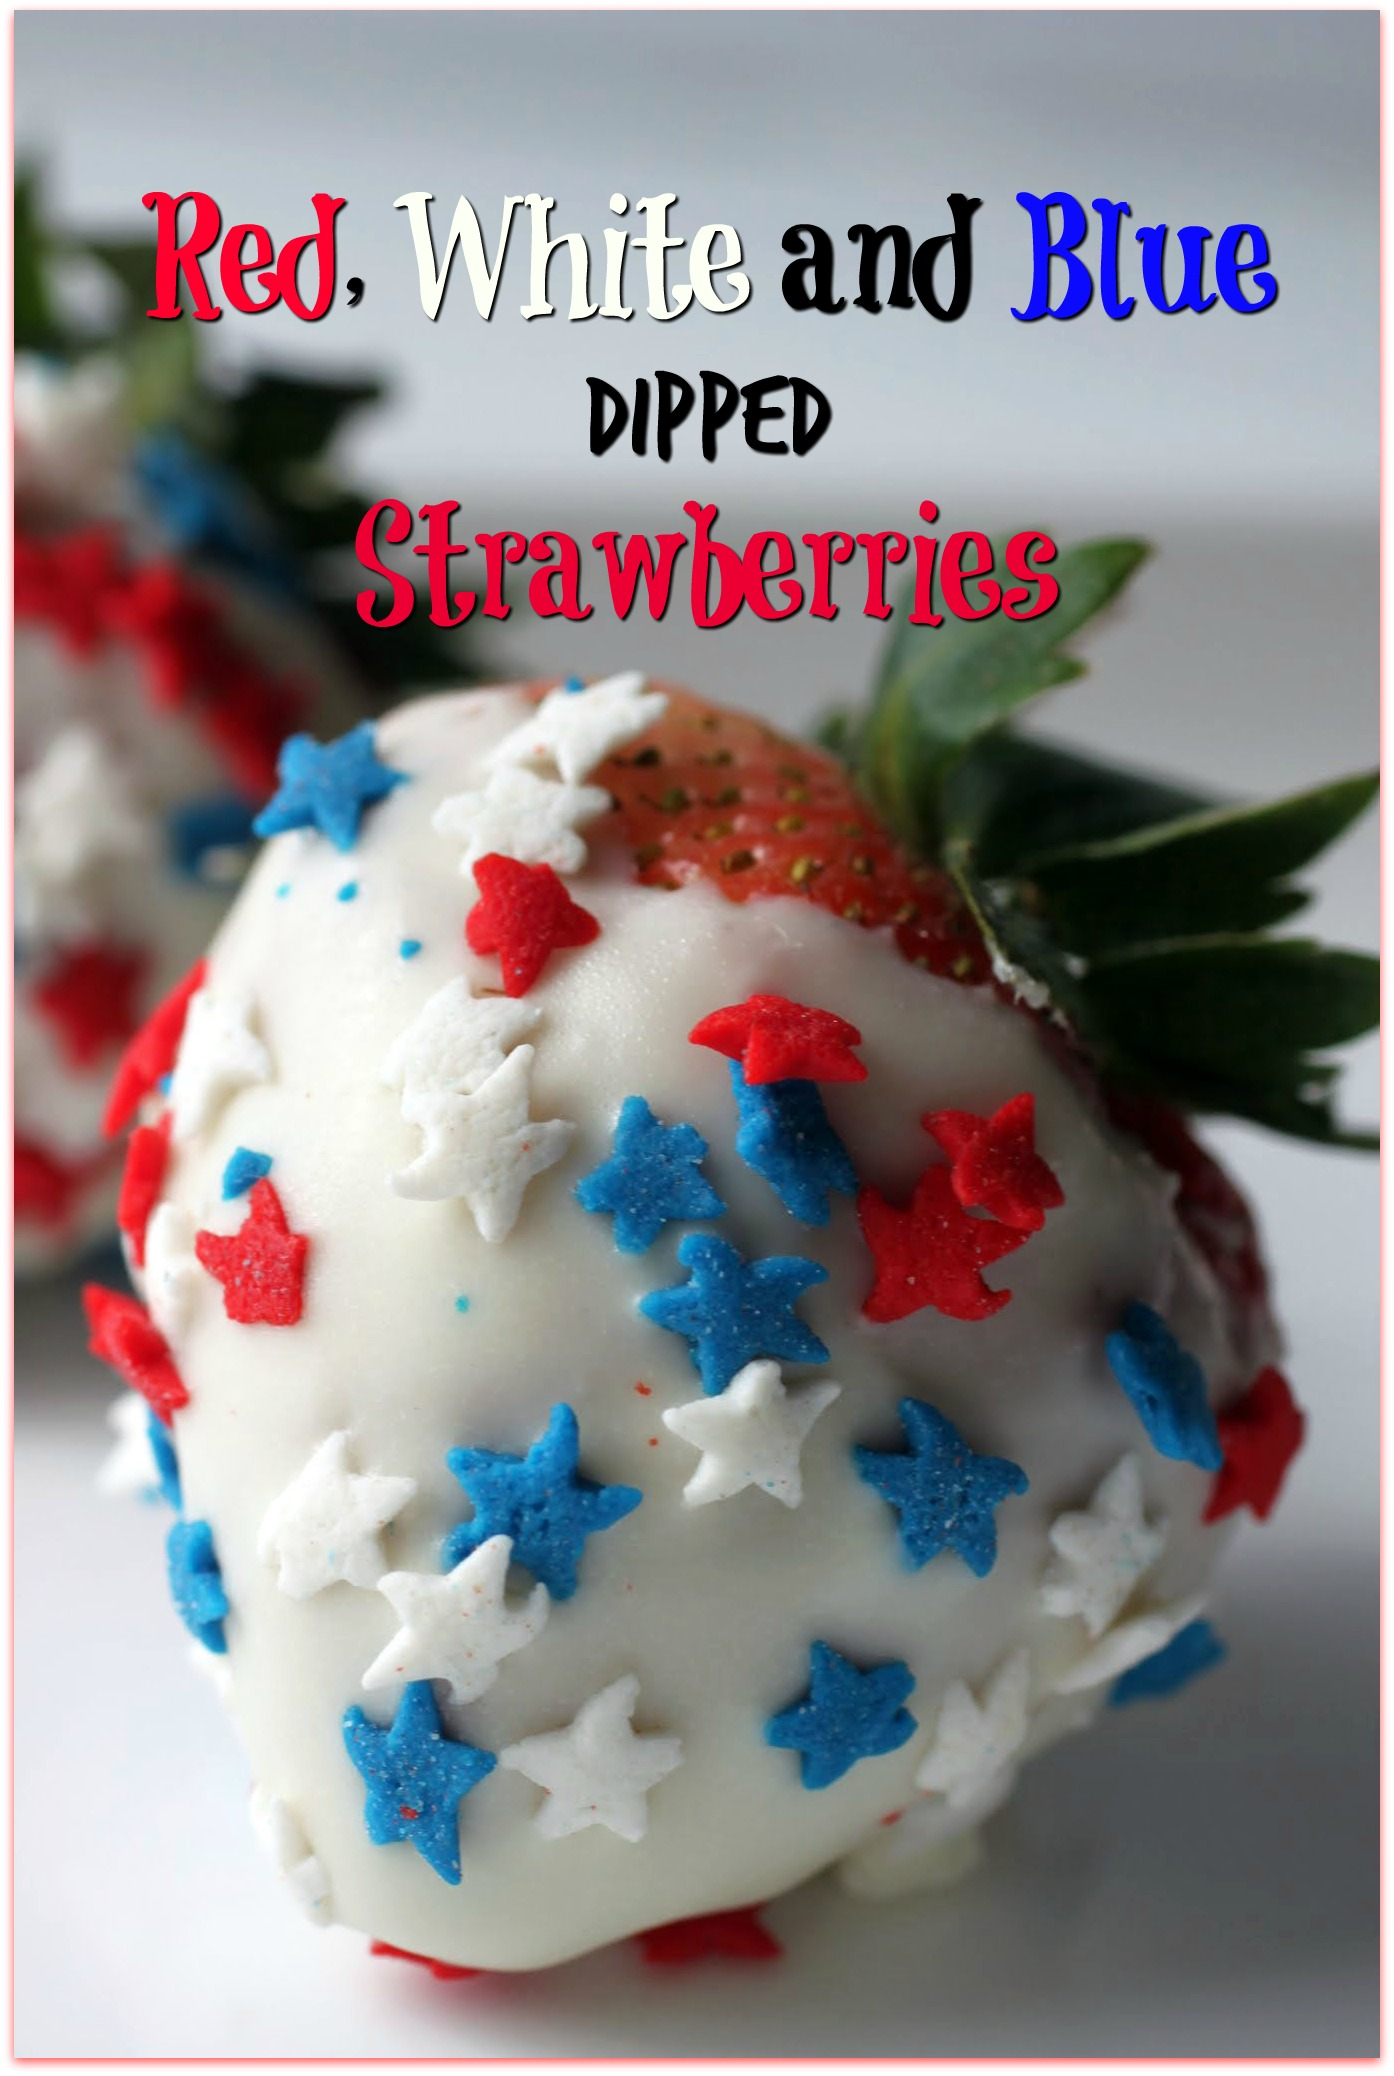 Red, White and Blue Dipped Strawberries